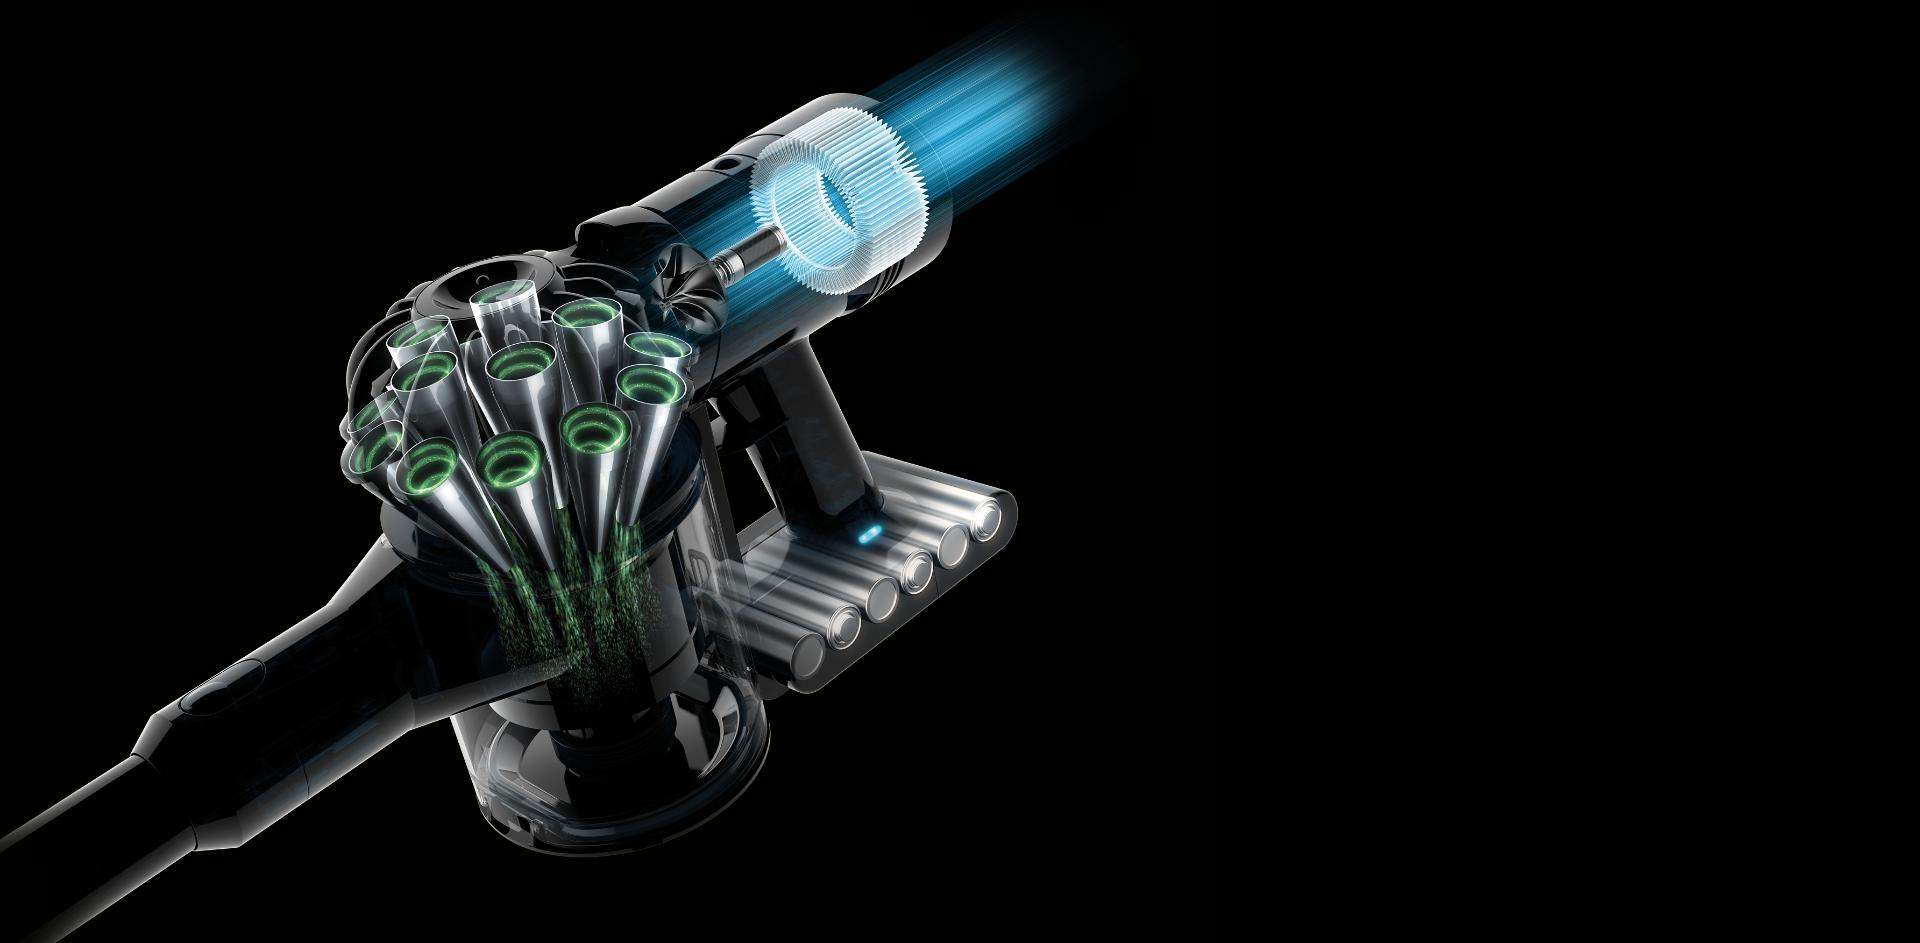 Cutaway image of the Dyson V8 Slim's post-motor filter